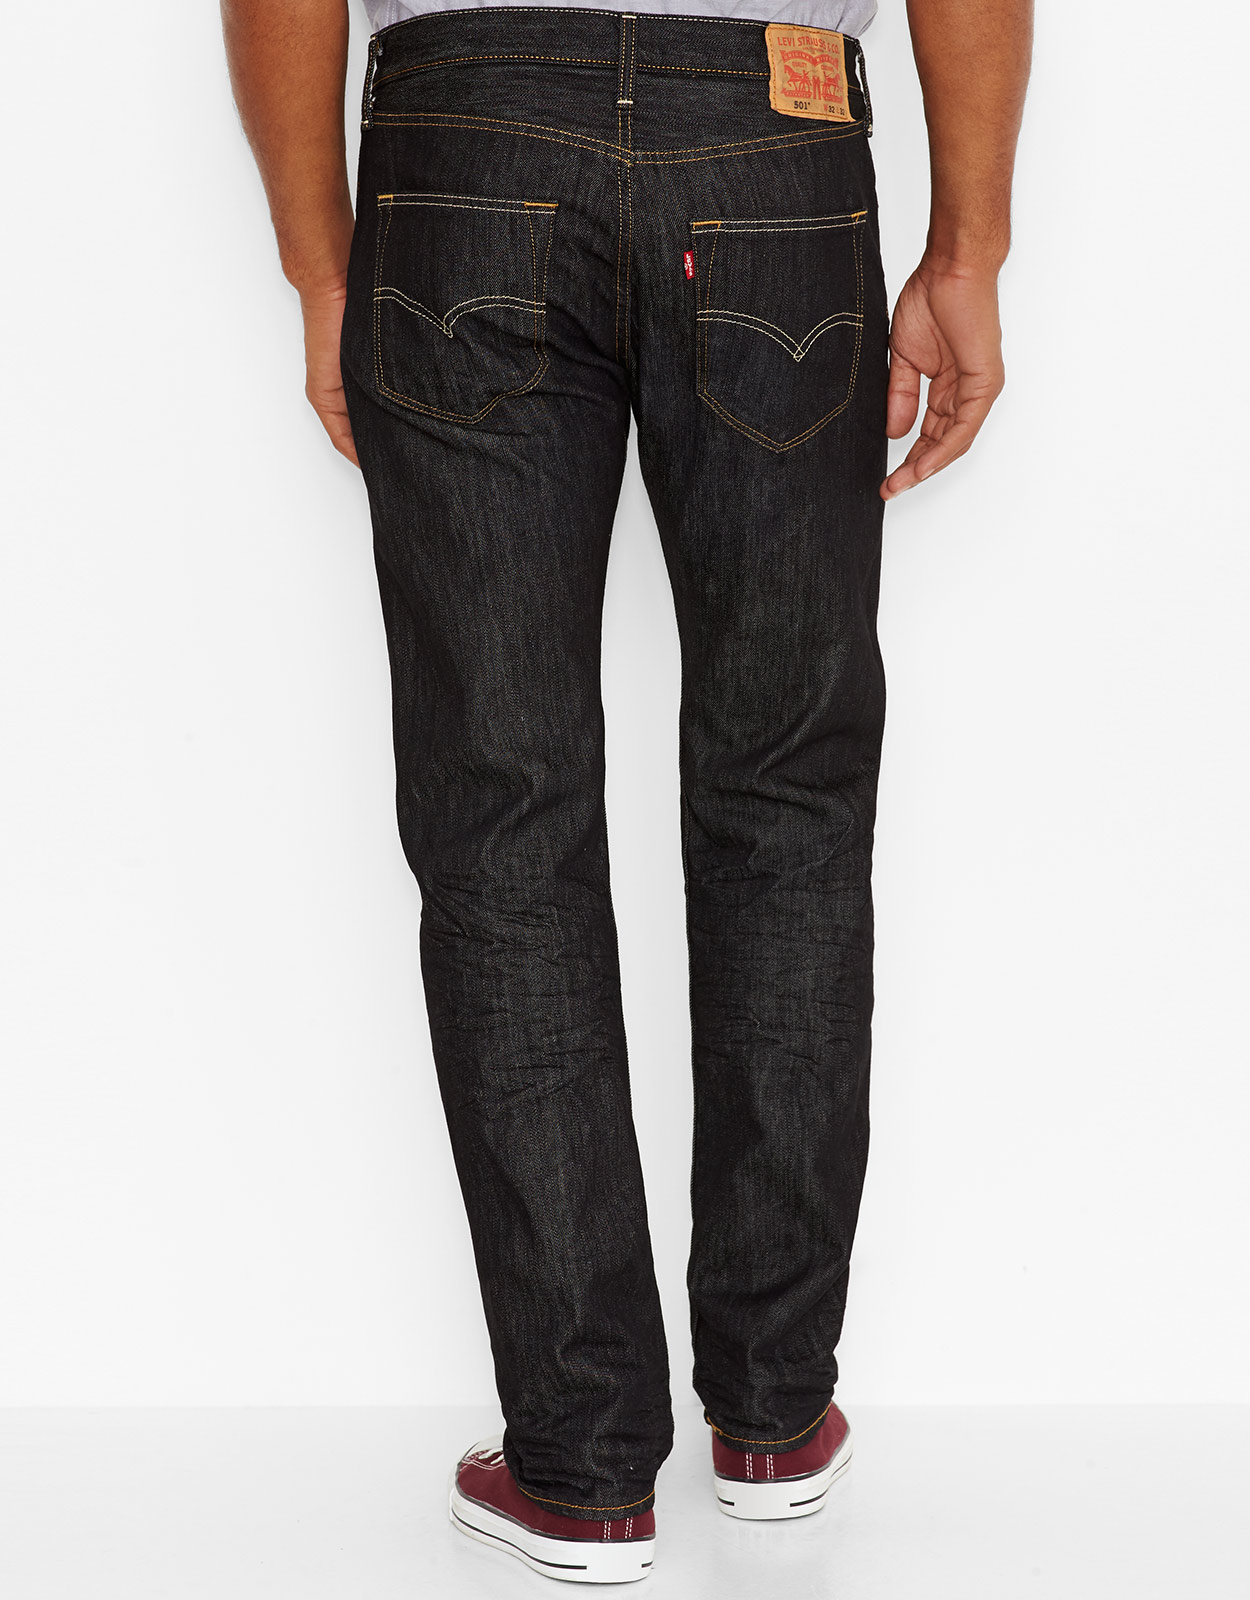 Levi s Men s 501 Original Fit Jeans - Iconic Black b9d77079e